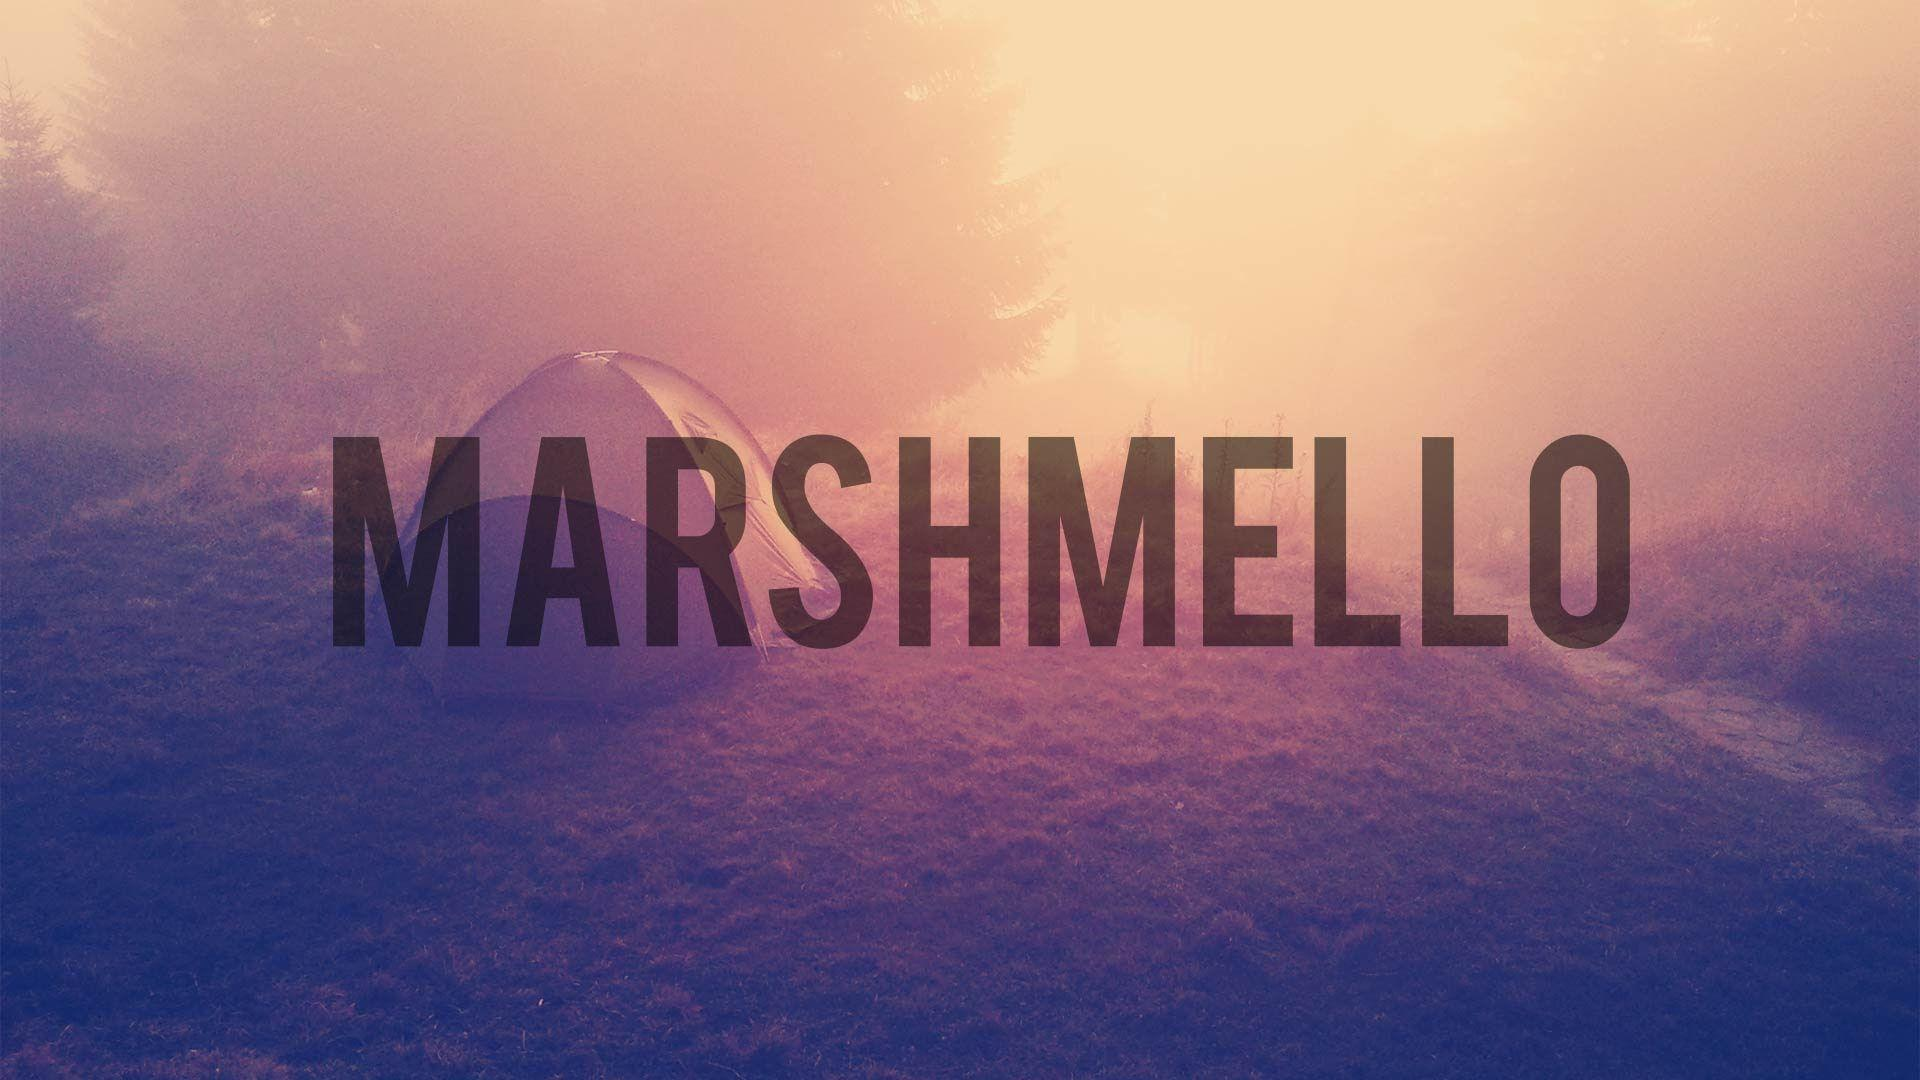 Marshmello Wallpaper | Zoni Wallpapers